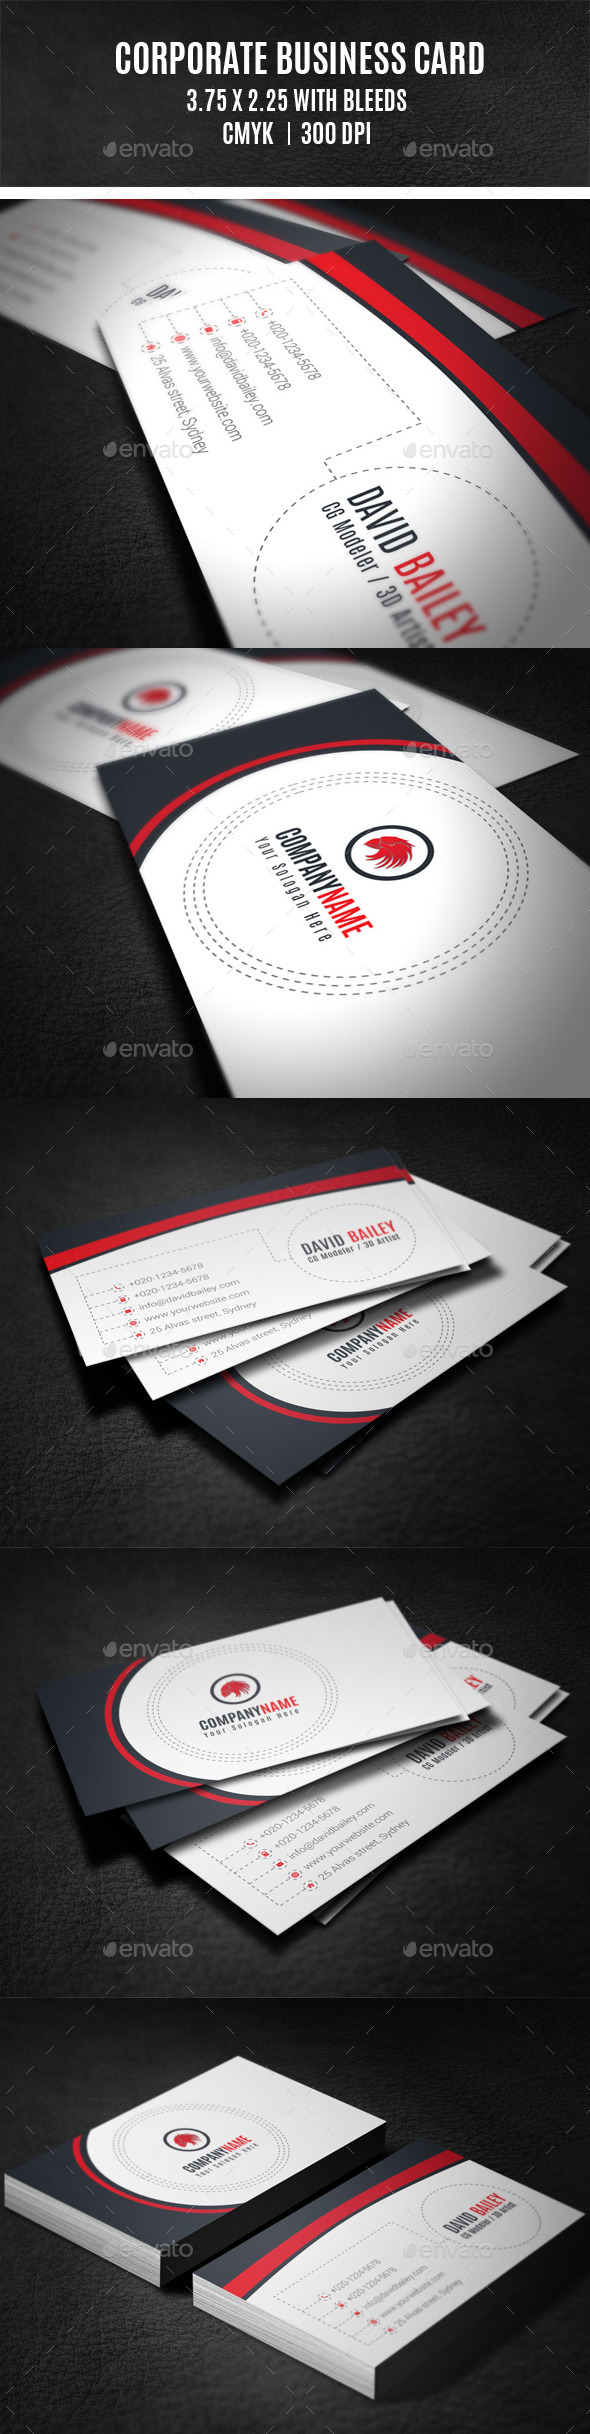 GraphicRiver Corporate Business Card 9918924